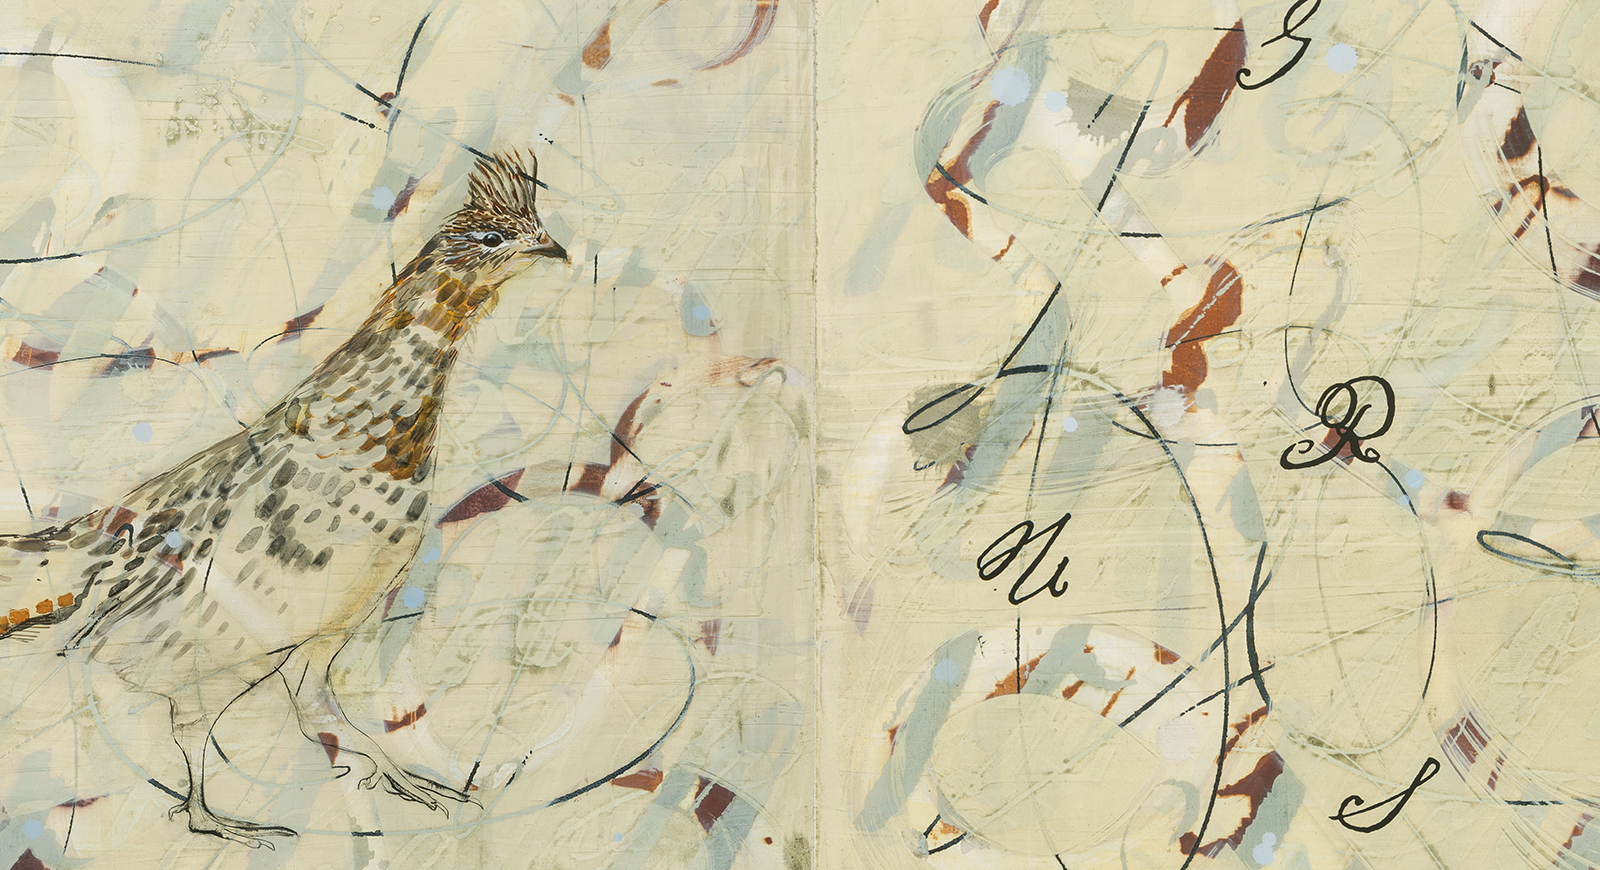 Off-white painting with 19th c. handwriting, gesture and ruffed grouse.